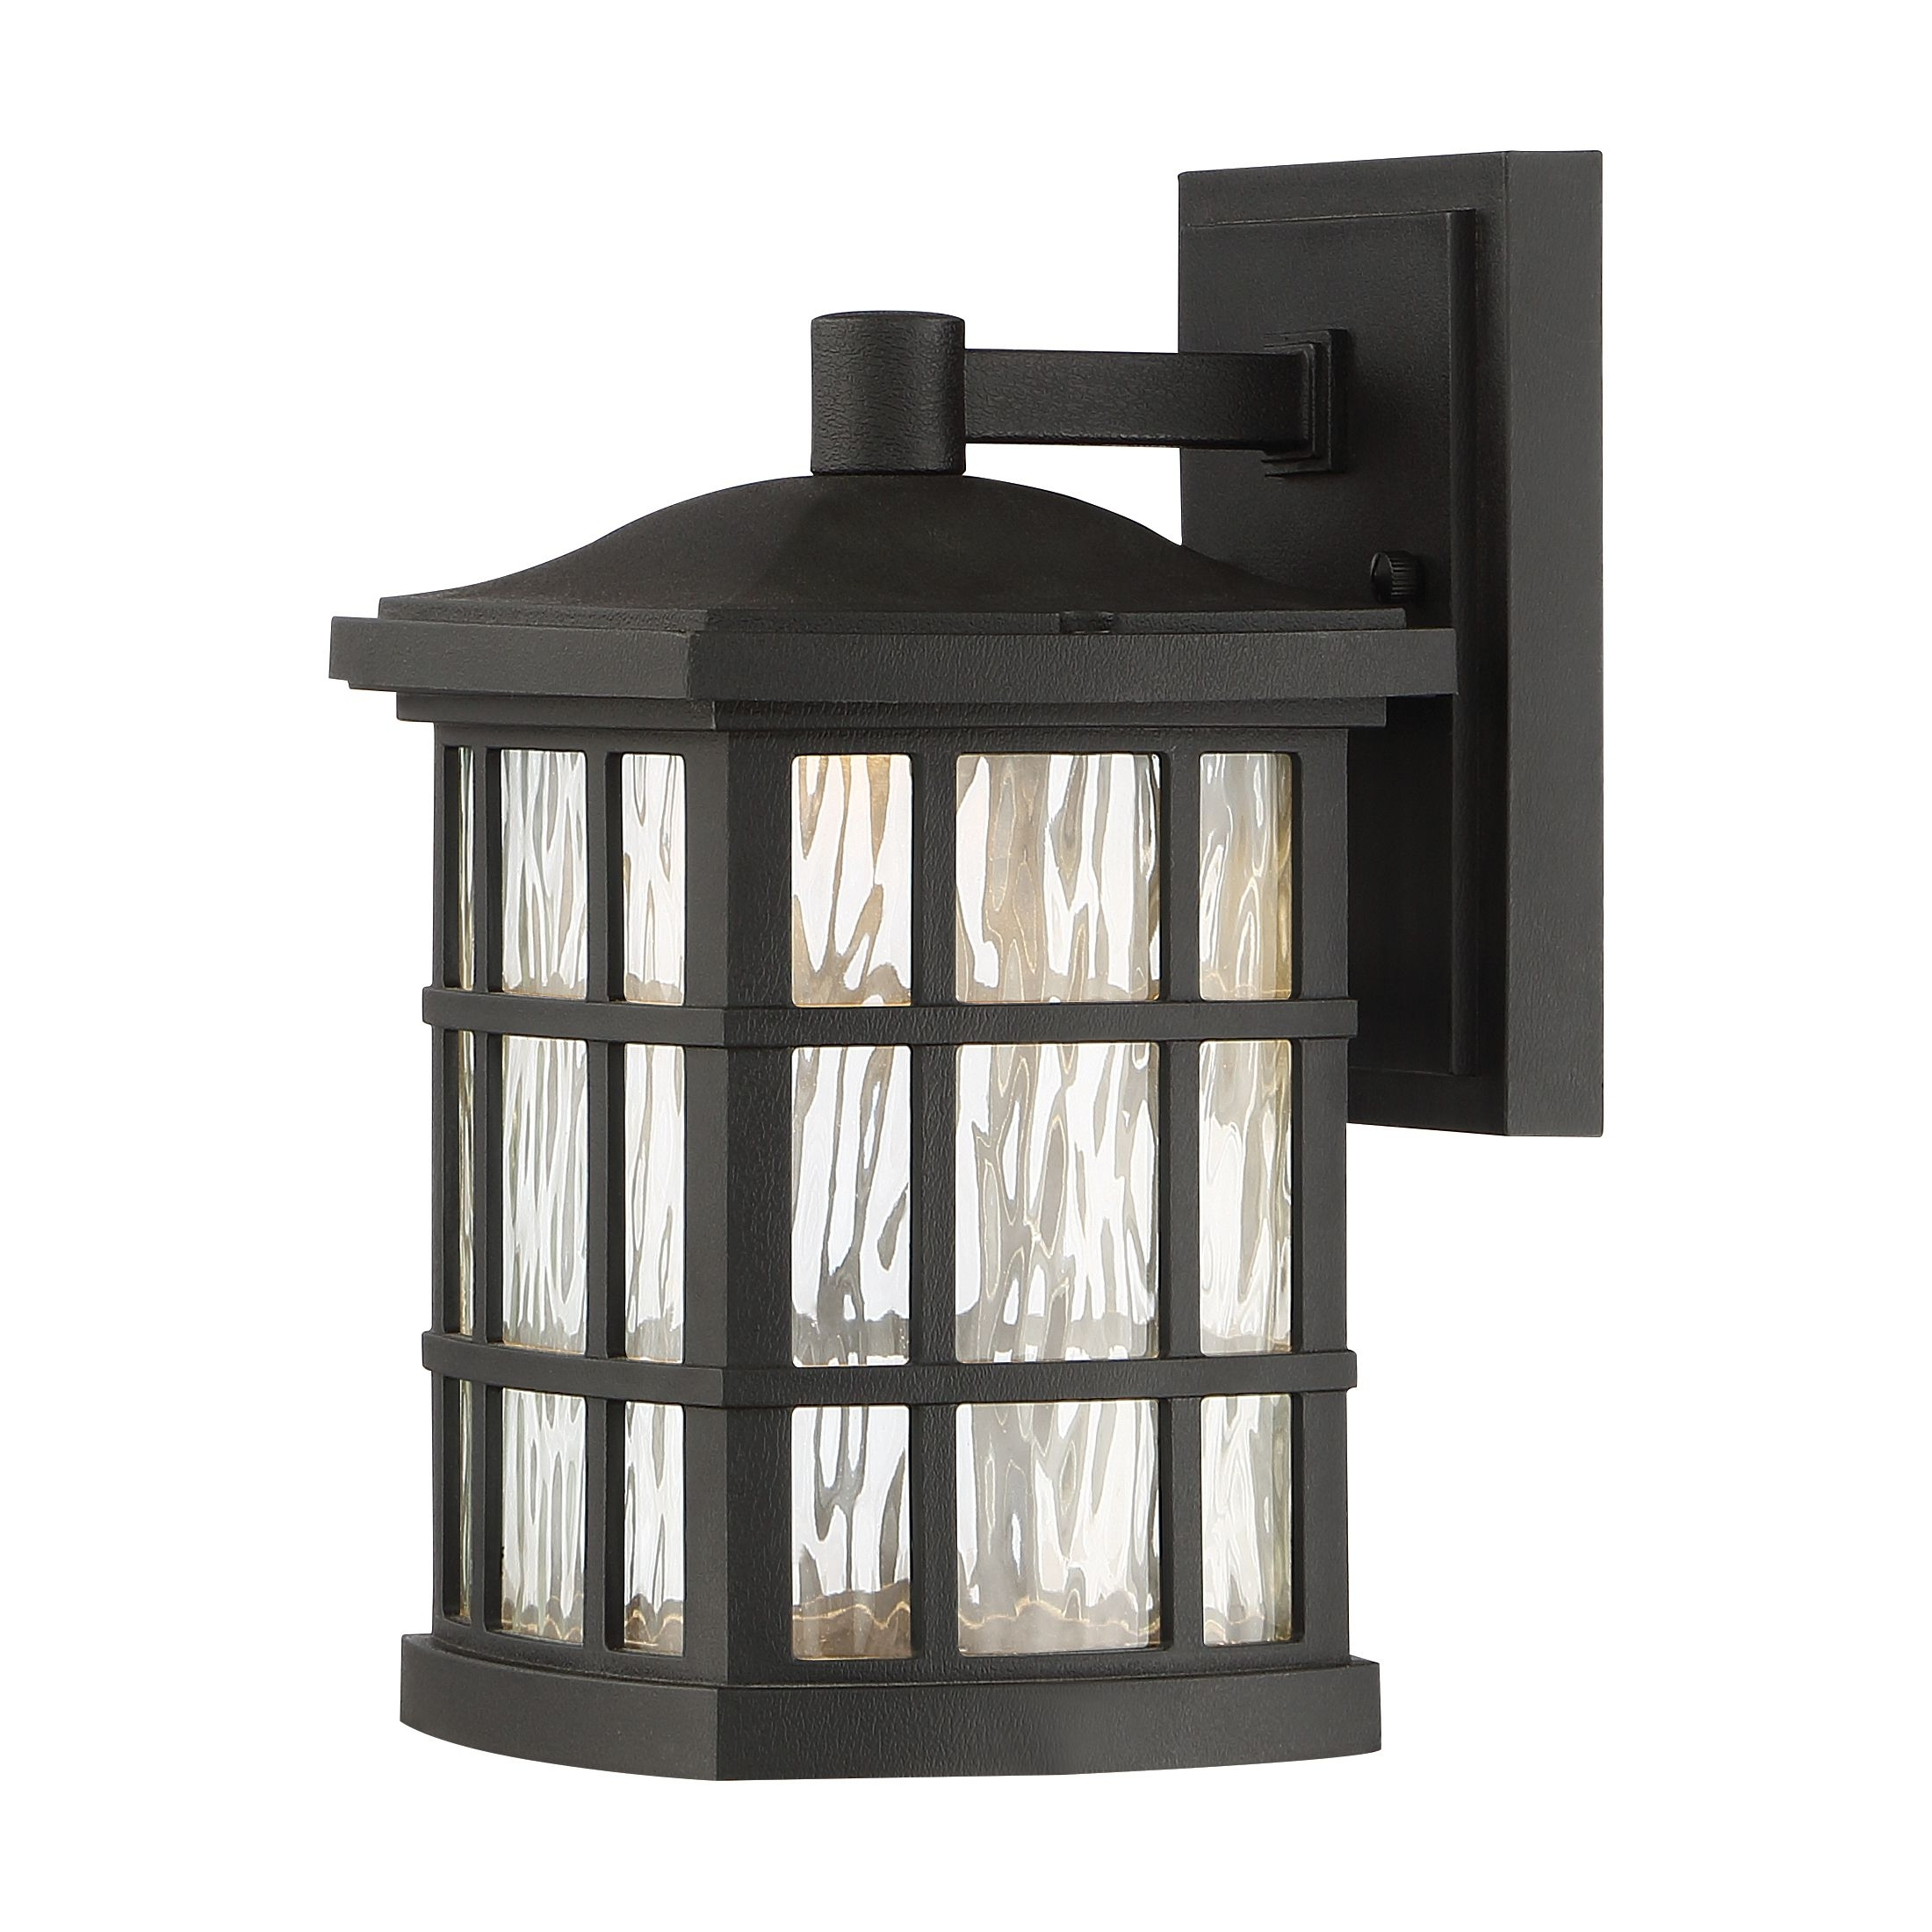 Quoizel In Widely Used Outdoor Lanterns With Led Lights (View 17 of 20)